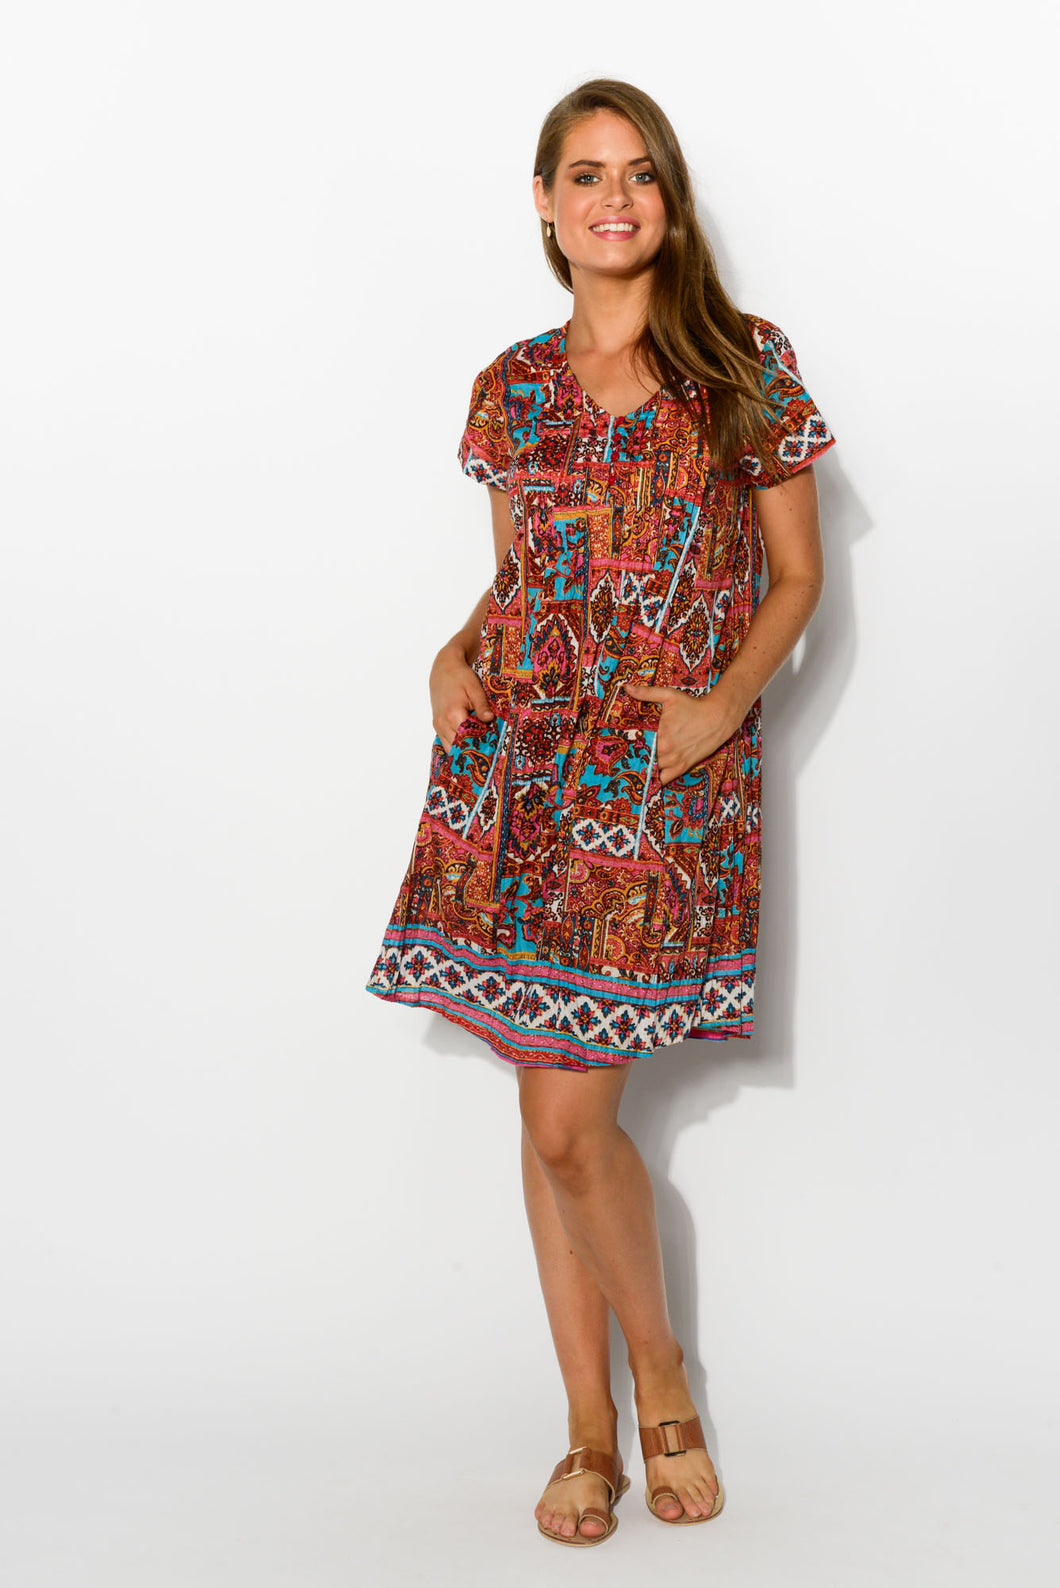 Turkish Red Crinkle Cotton Dress - Blue Bungalow